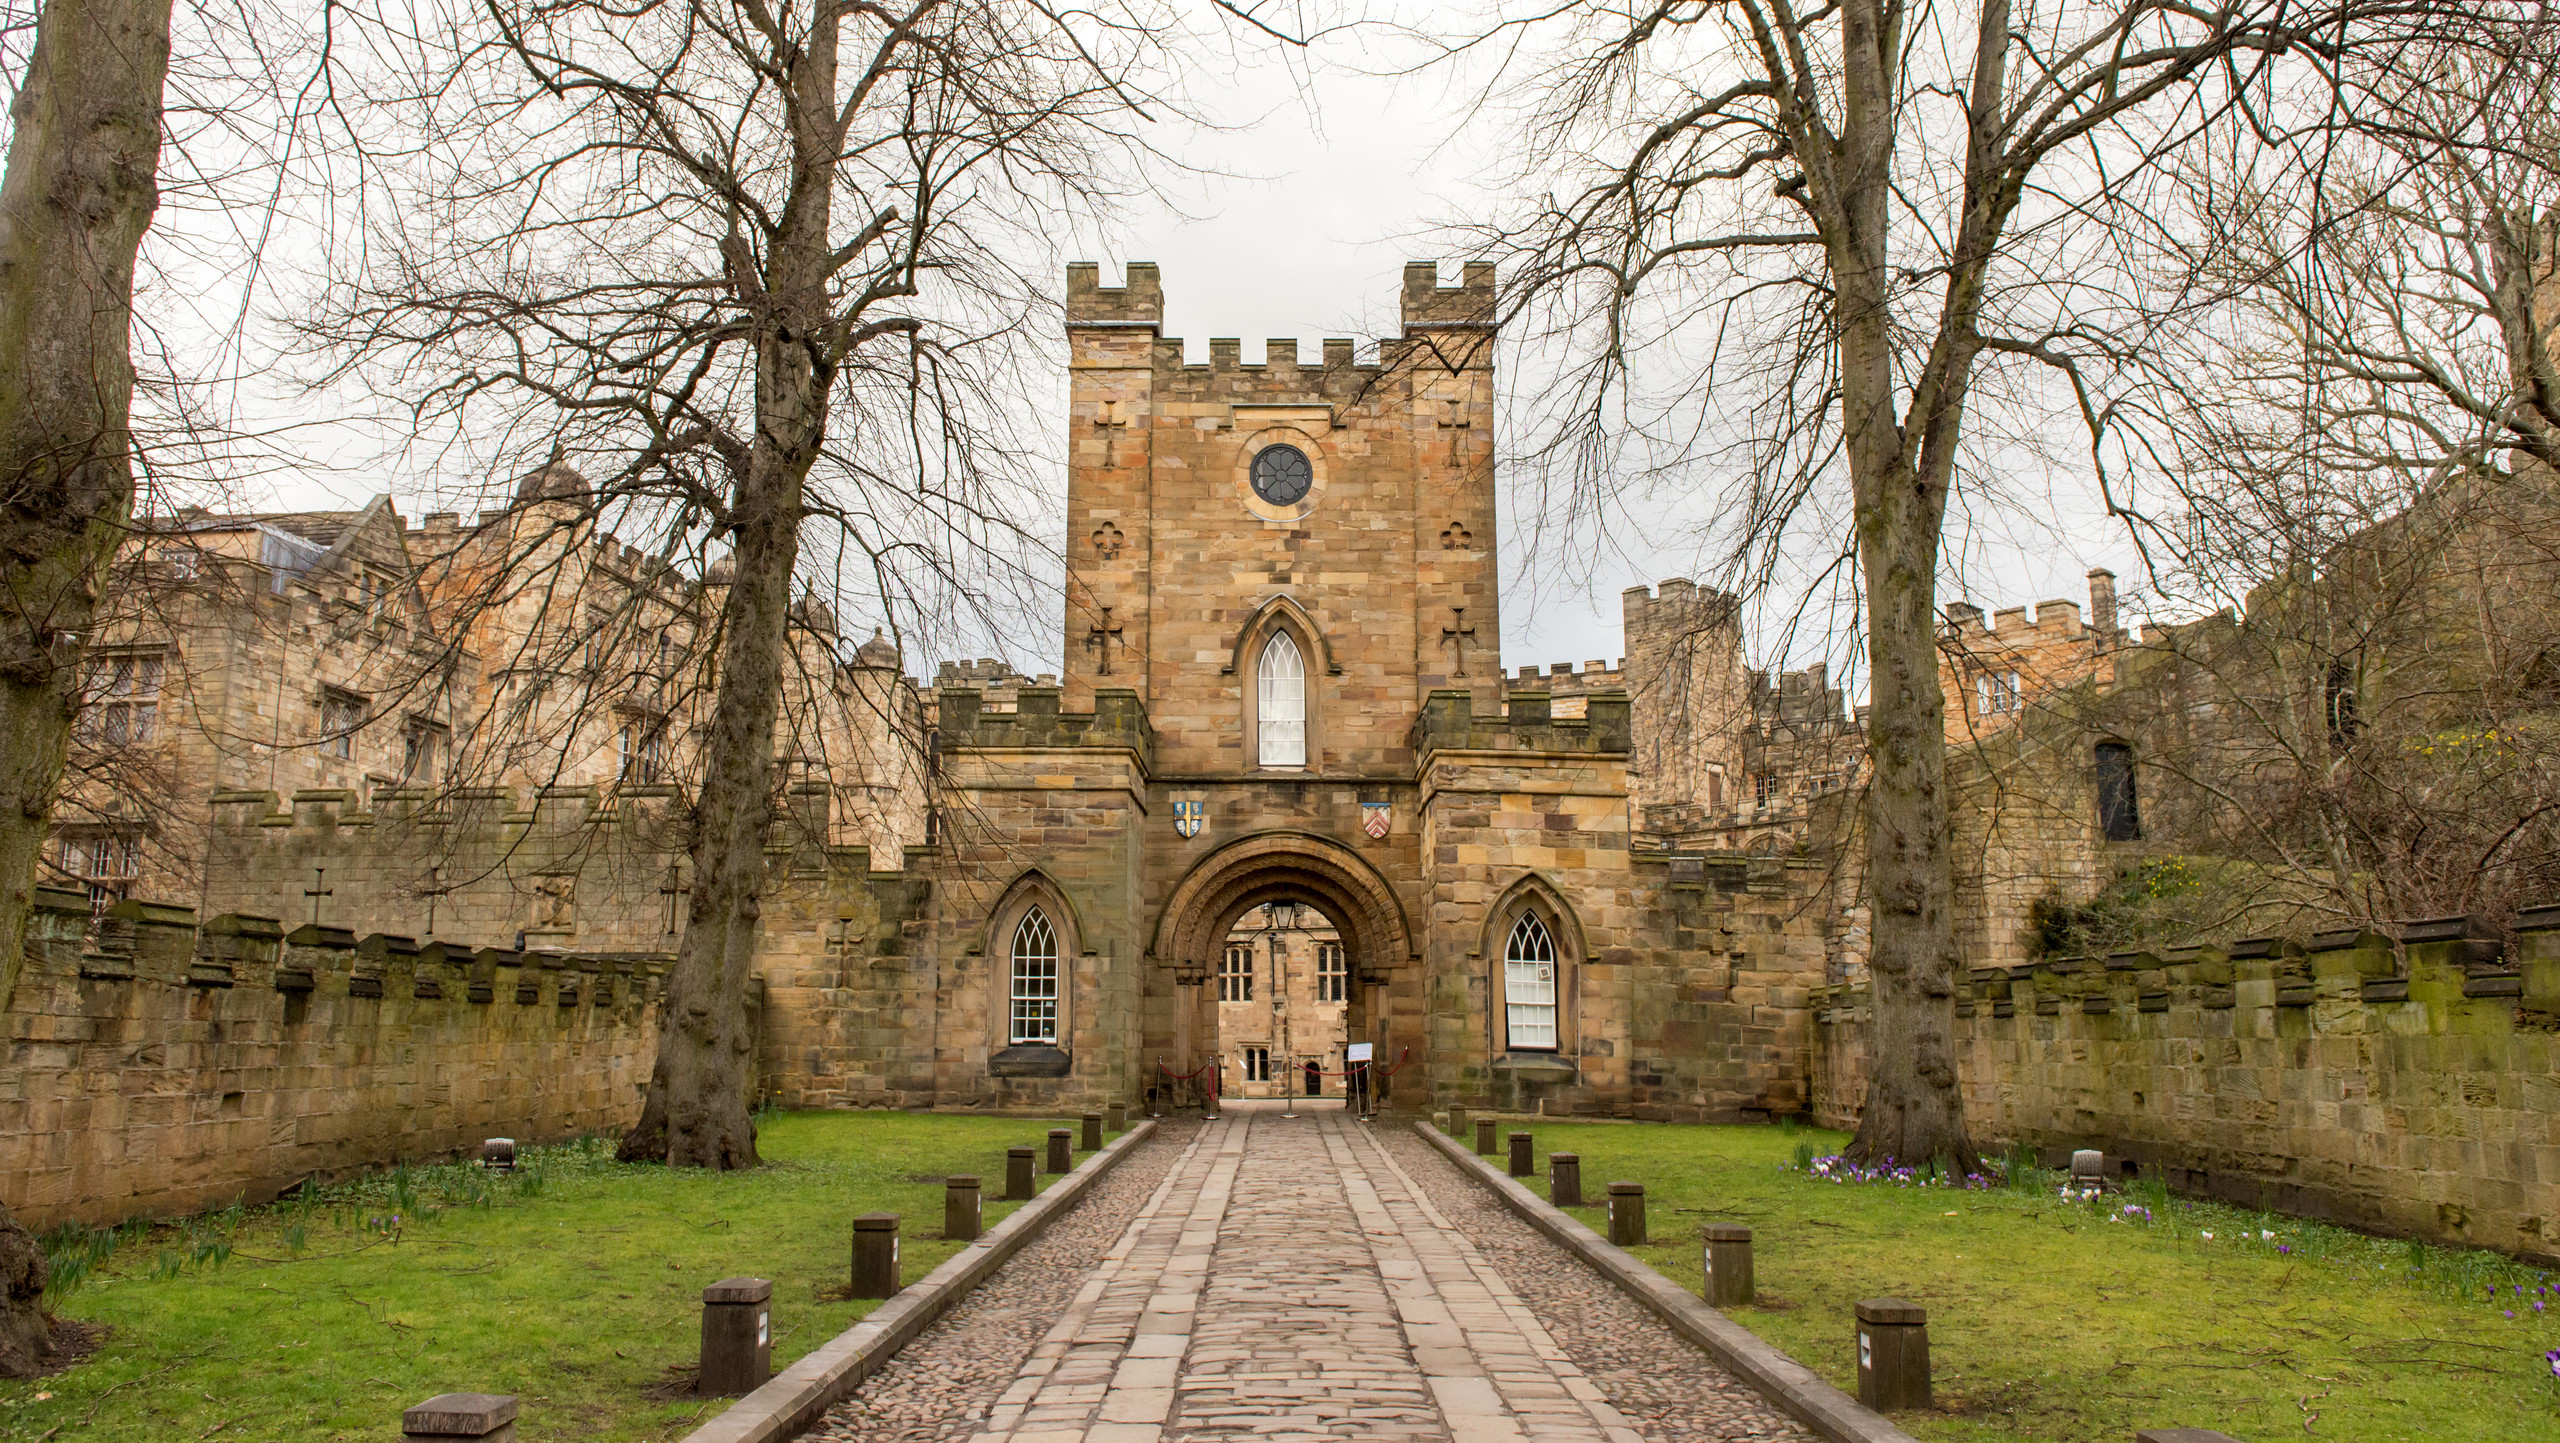 Pathway entrance and gateway to Inner Bailey of historic Durham Castle in Durham City and County